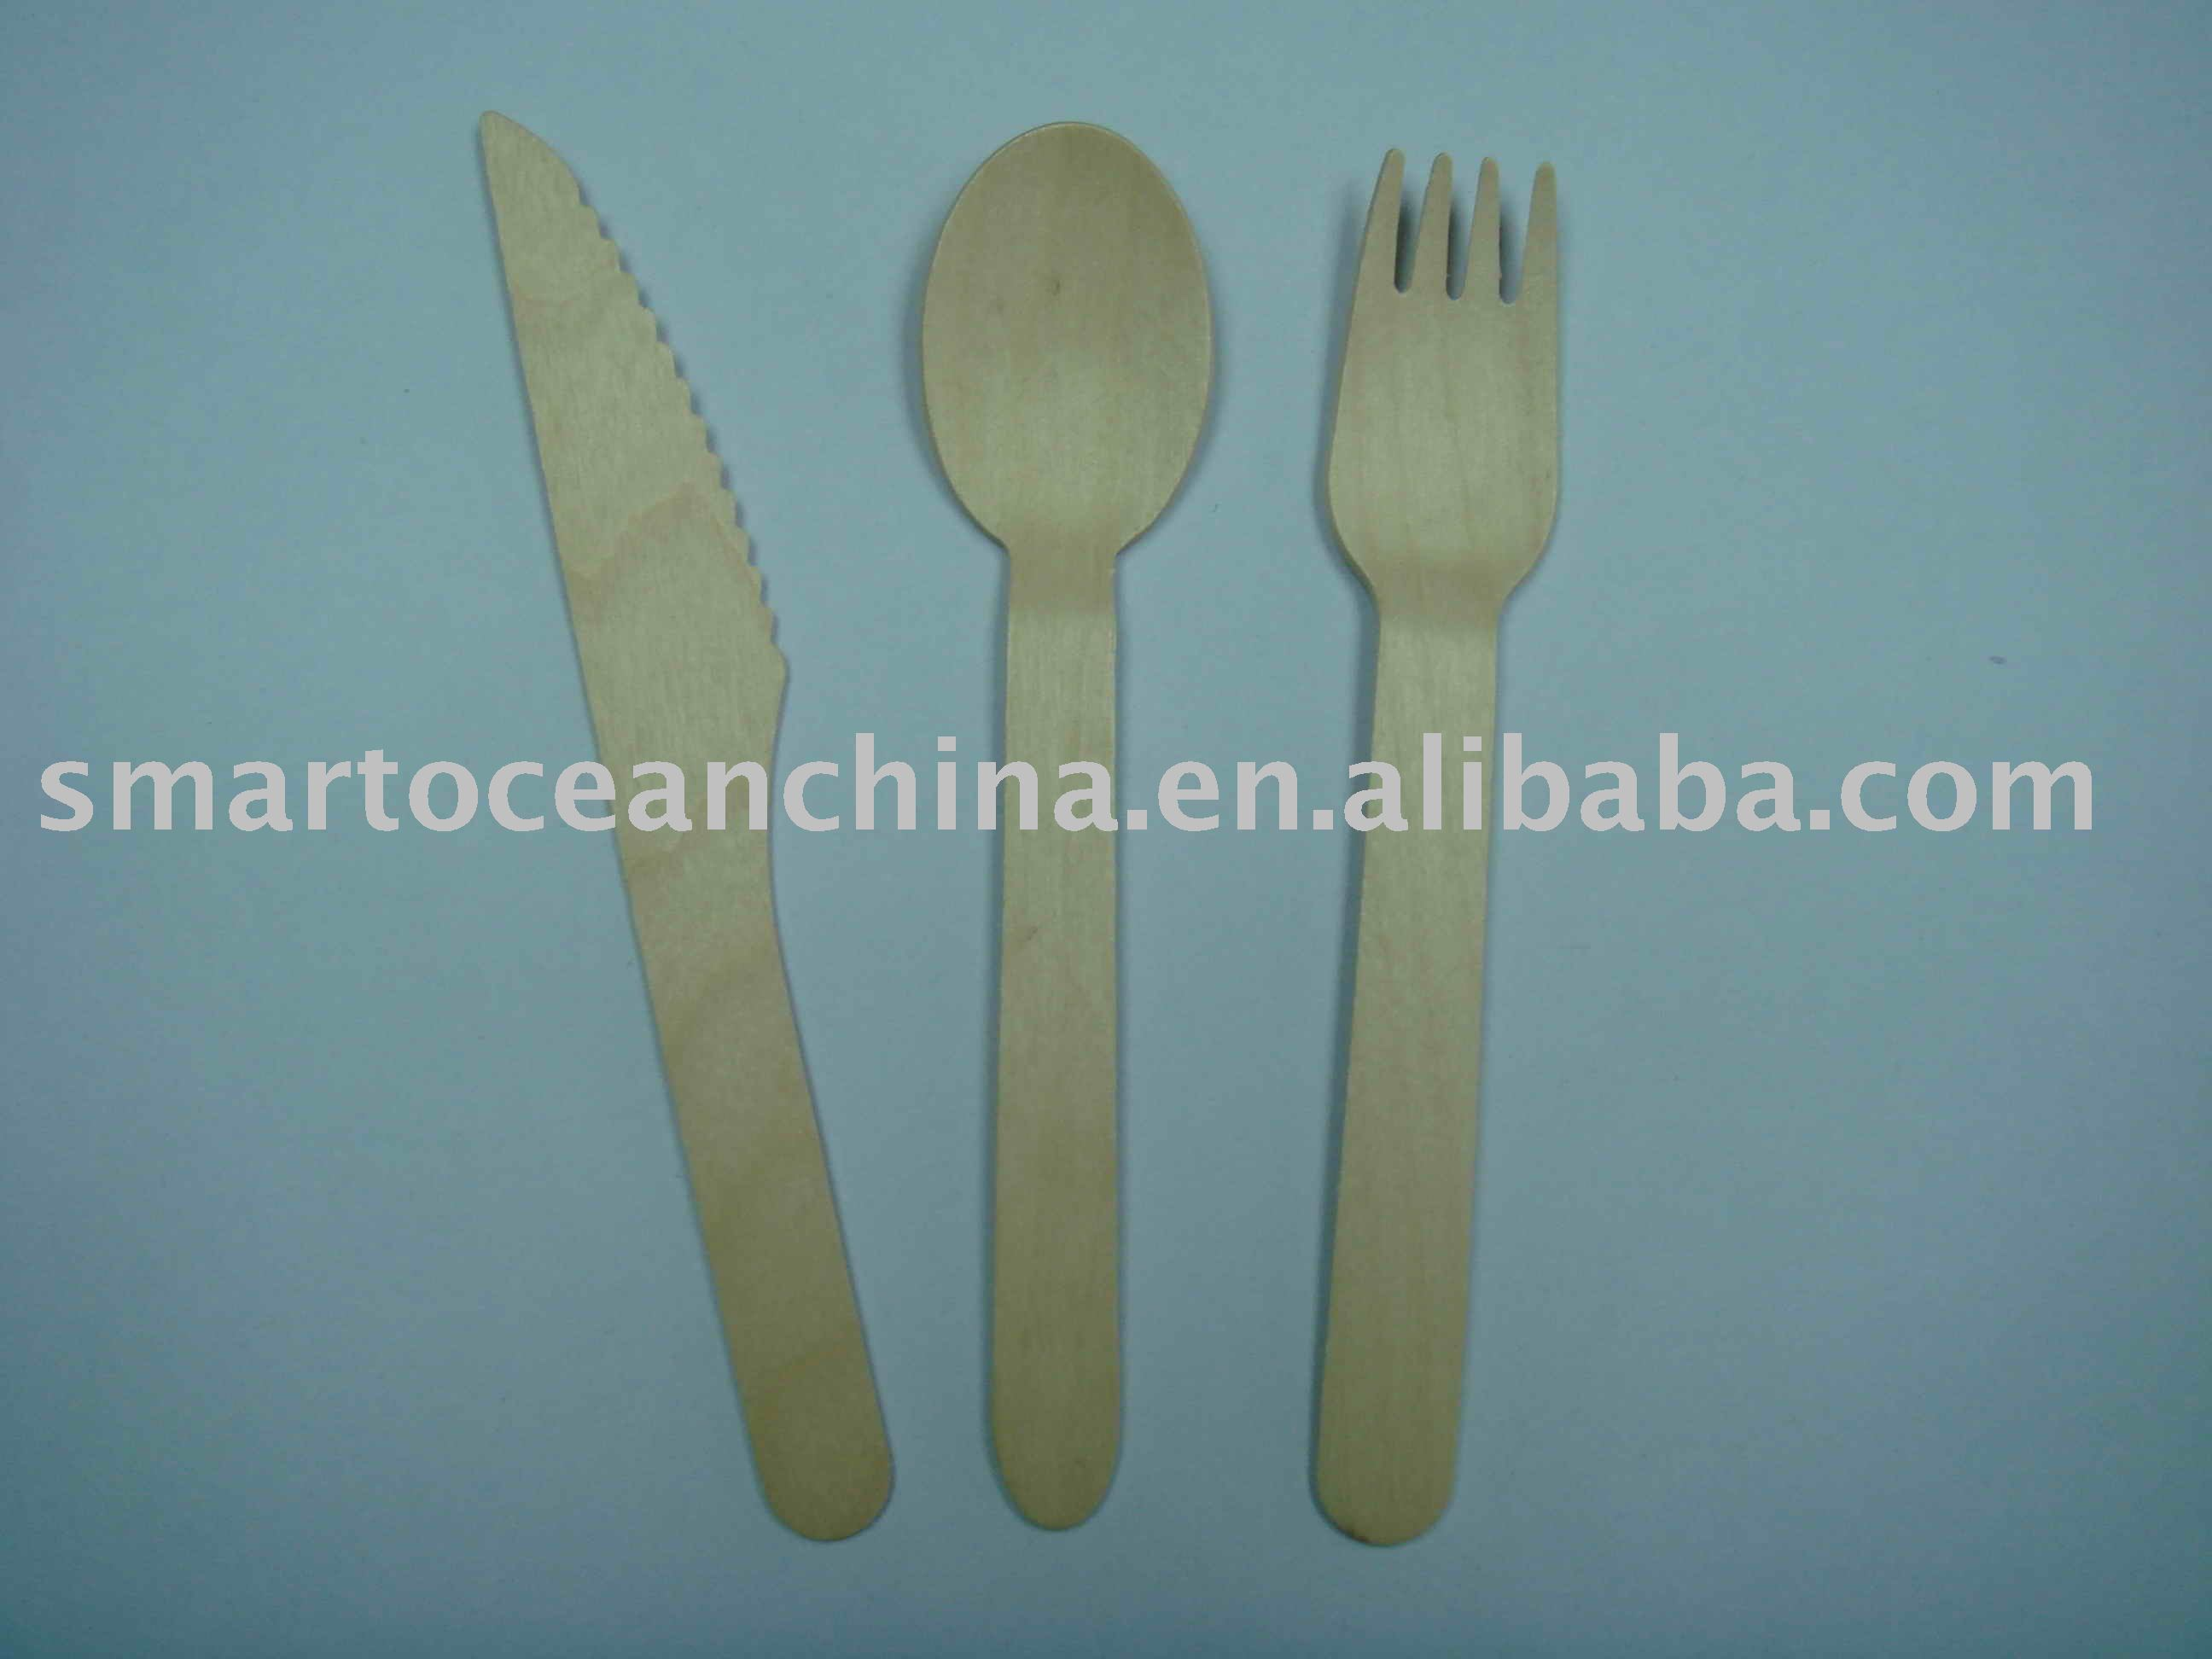 China wooden cooking forks wholesale 🇨🇳 - Alibaba